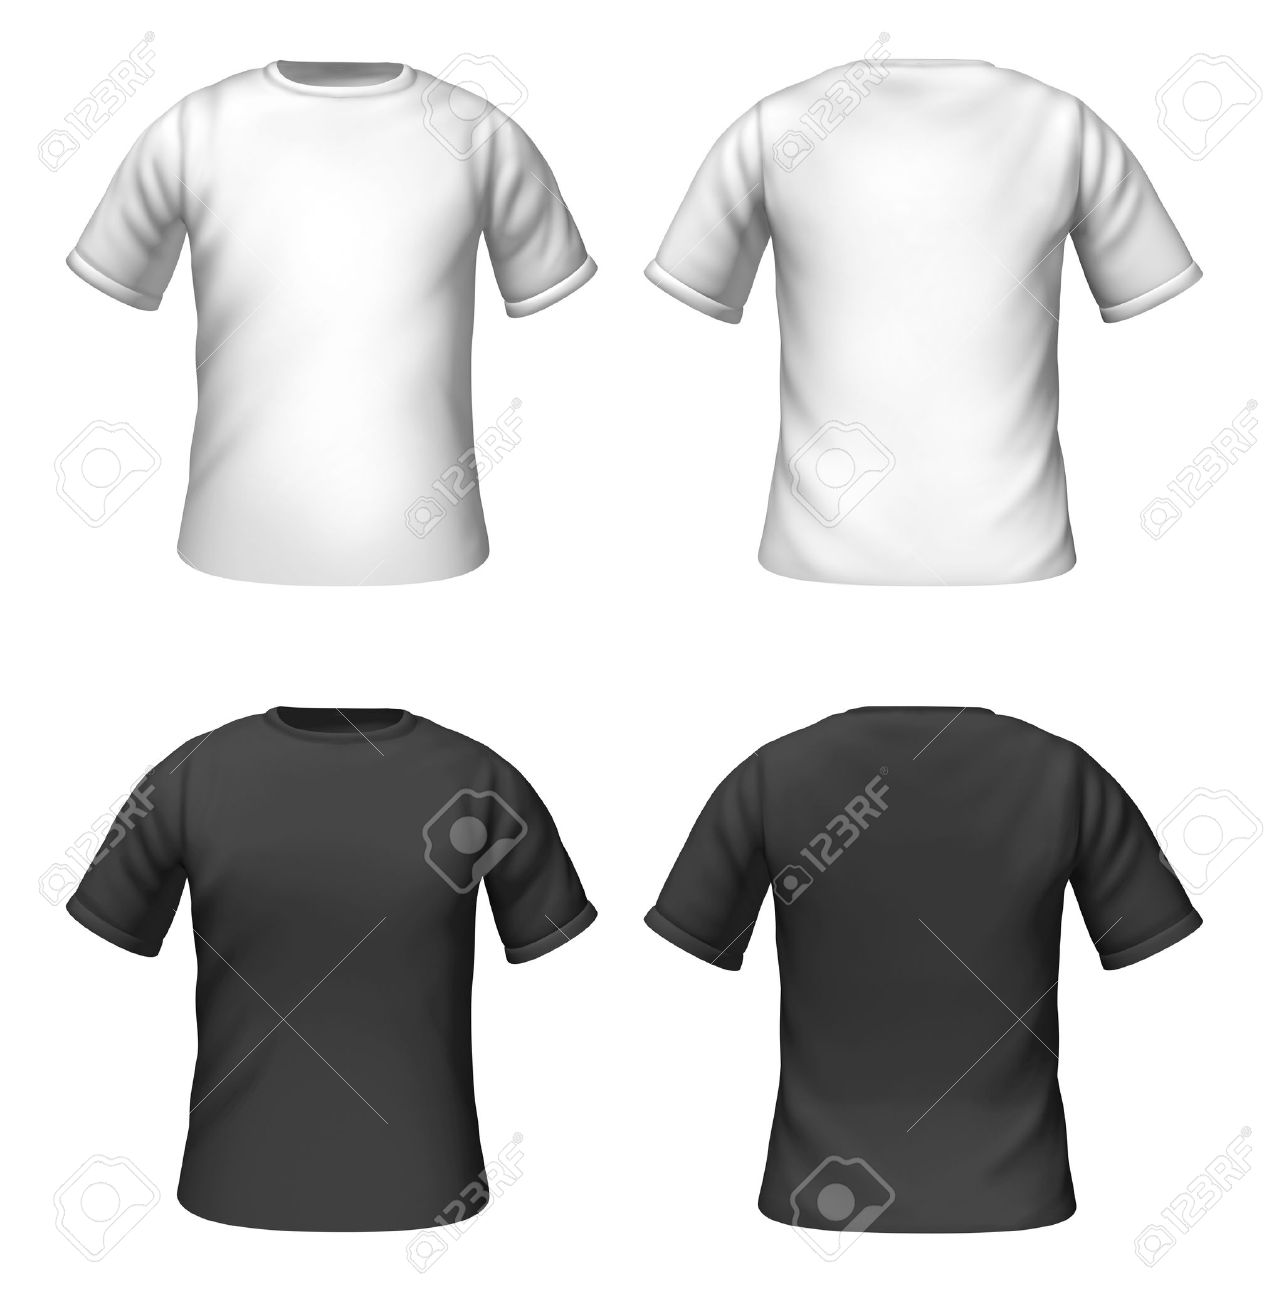 Black t shirt back and front template - Blank T Shirts Template With Black And White Colors Representing Front And Back Views Of